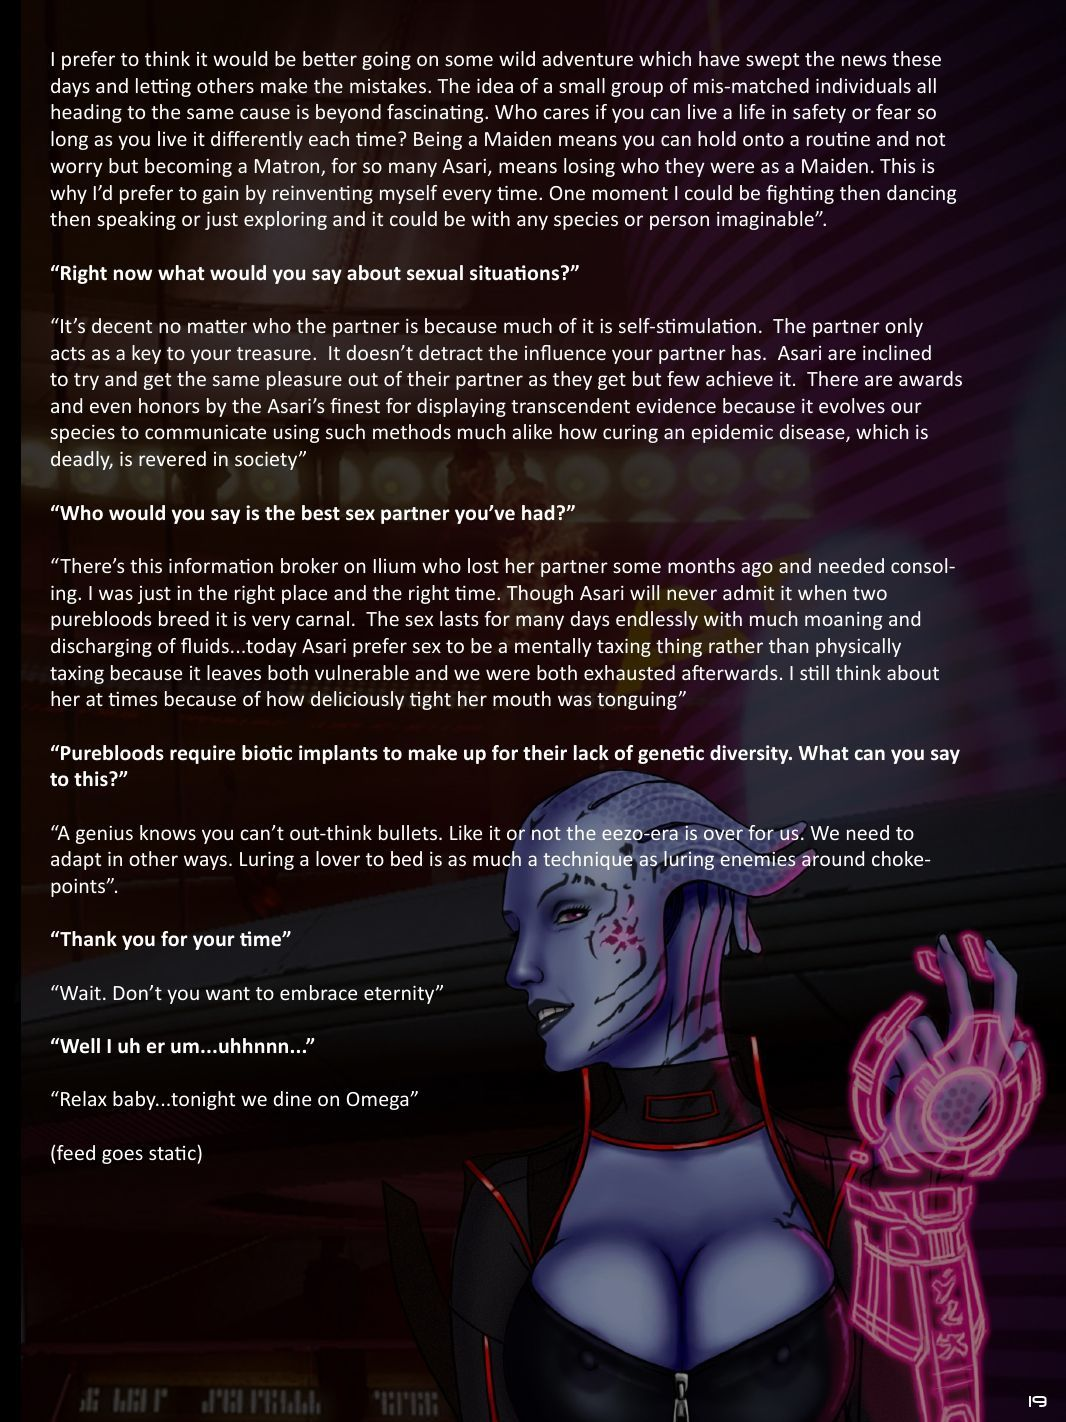 FORNAX_The_galaxys_finest_xenophilia_(Mass_Effect) comix_57951.jpg